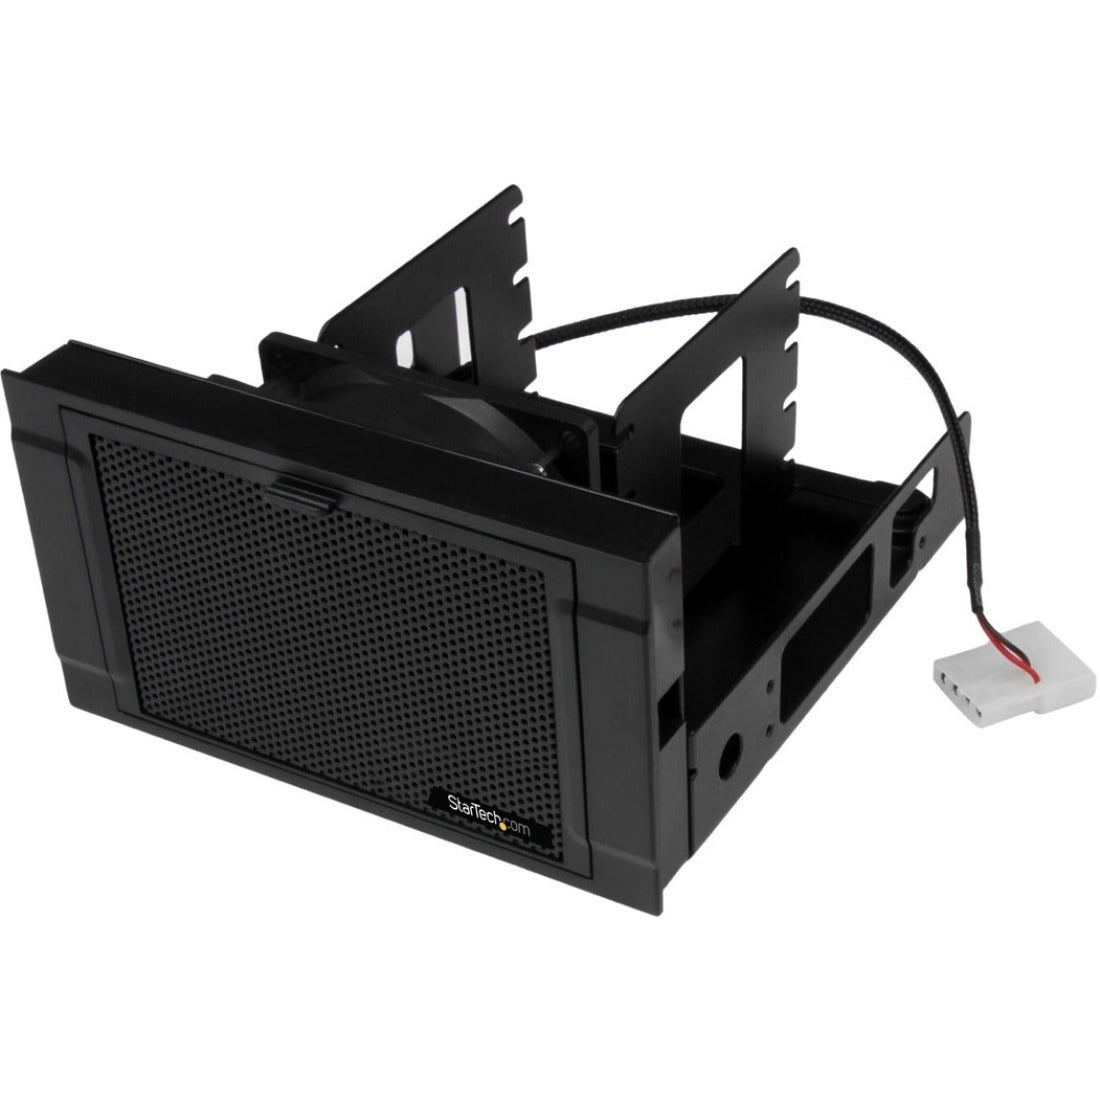 StarTech.com 4x 2.5in SSD/HDD Mounting Bracket with Cooling Fan - Four-Drive Mounting Bracket for Desktop Computer or Server